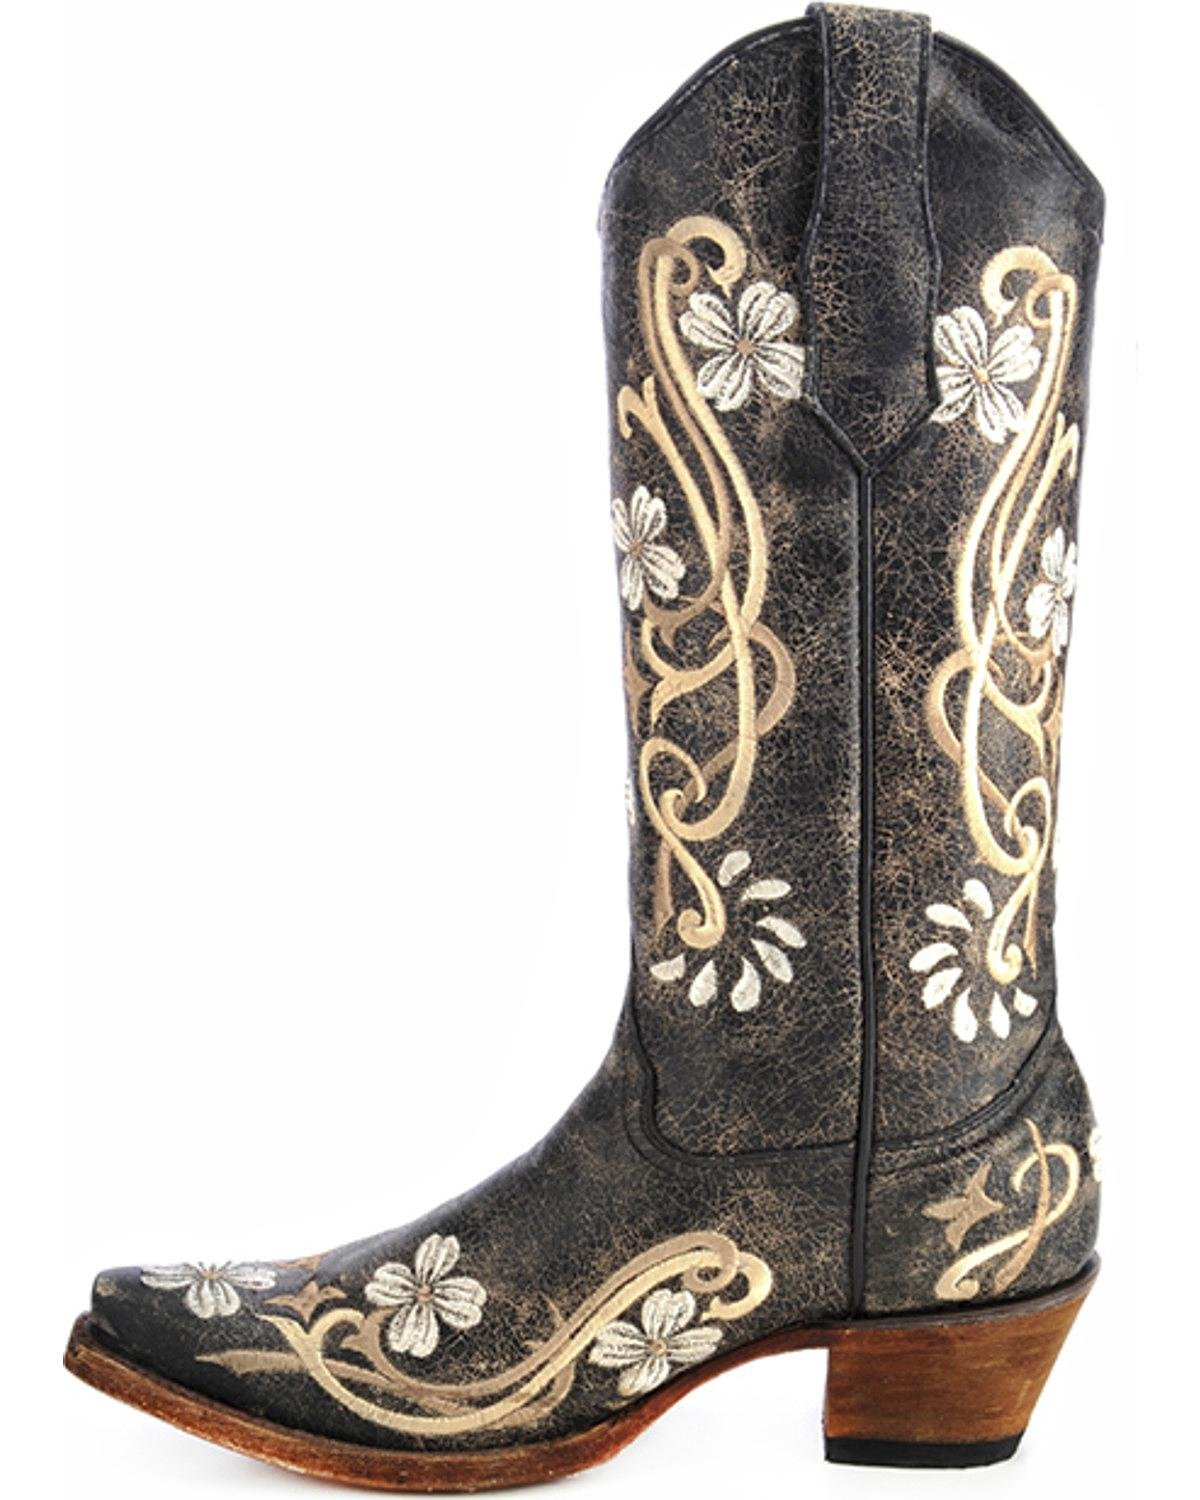 CORRAL Womens L5175 Black/Multi Color Floral Embroidery Boots (L5175-LD)